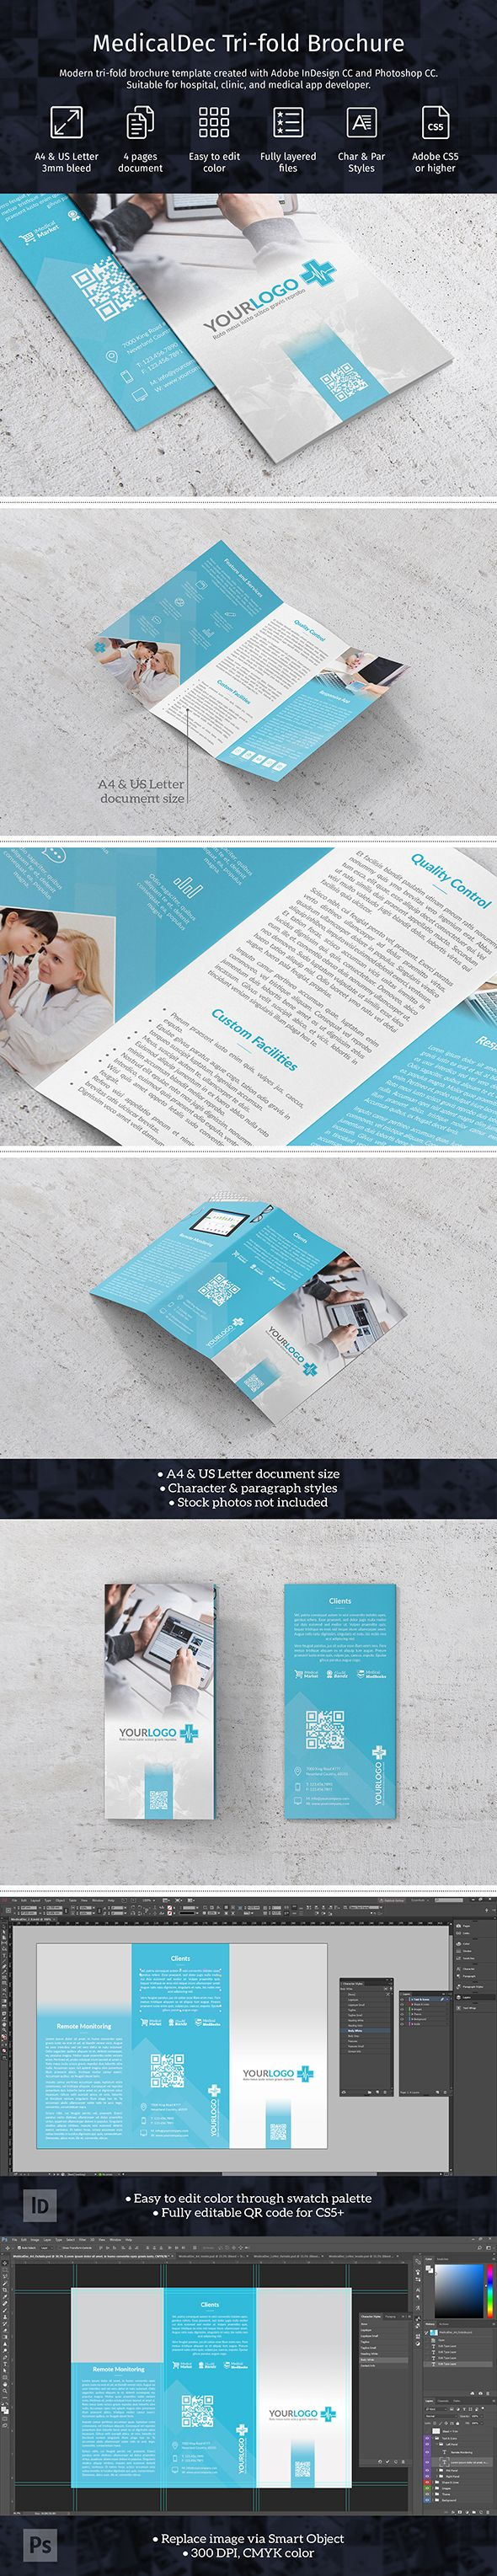 Modern tri-fold brochure template in A4 and US Letter size created with Adobe InDesign CC and Photoshop CC. Suitable for hospital, clinic, and medical app developer. Template comes in A4 and US Letter size with 3 mm bleed, character & paragraph styles, and fully editable logo.